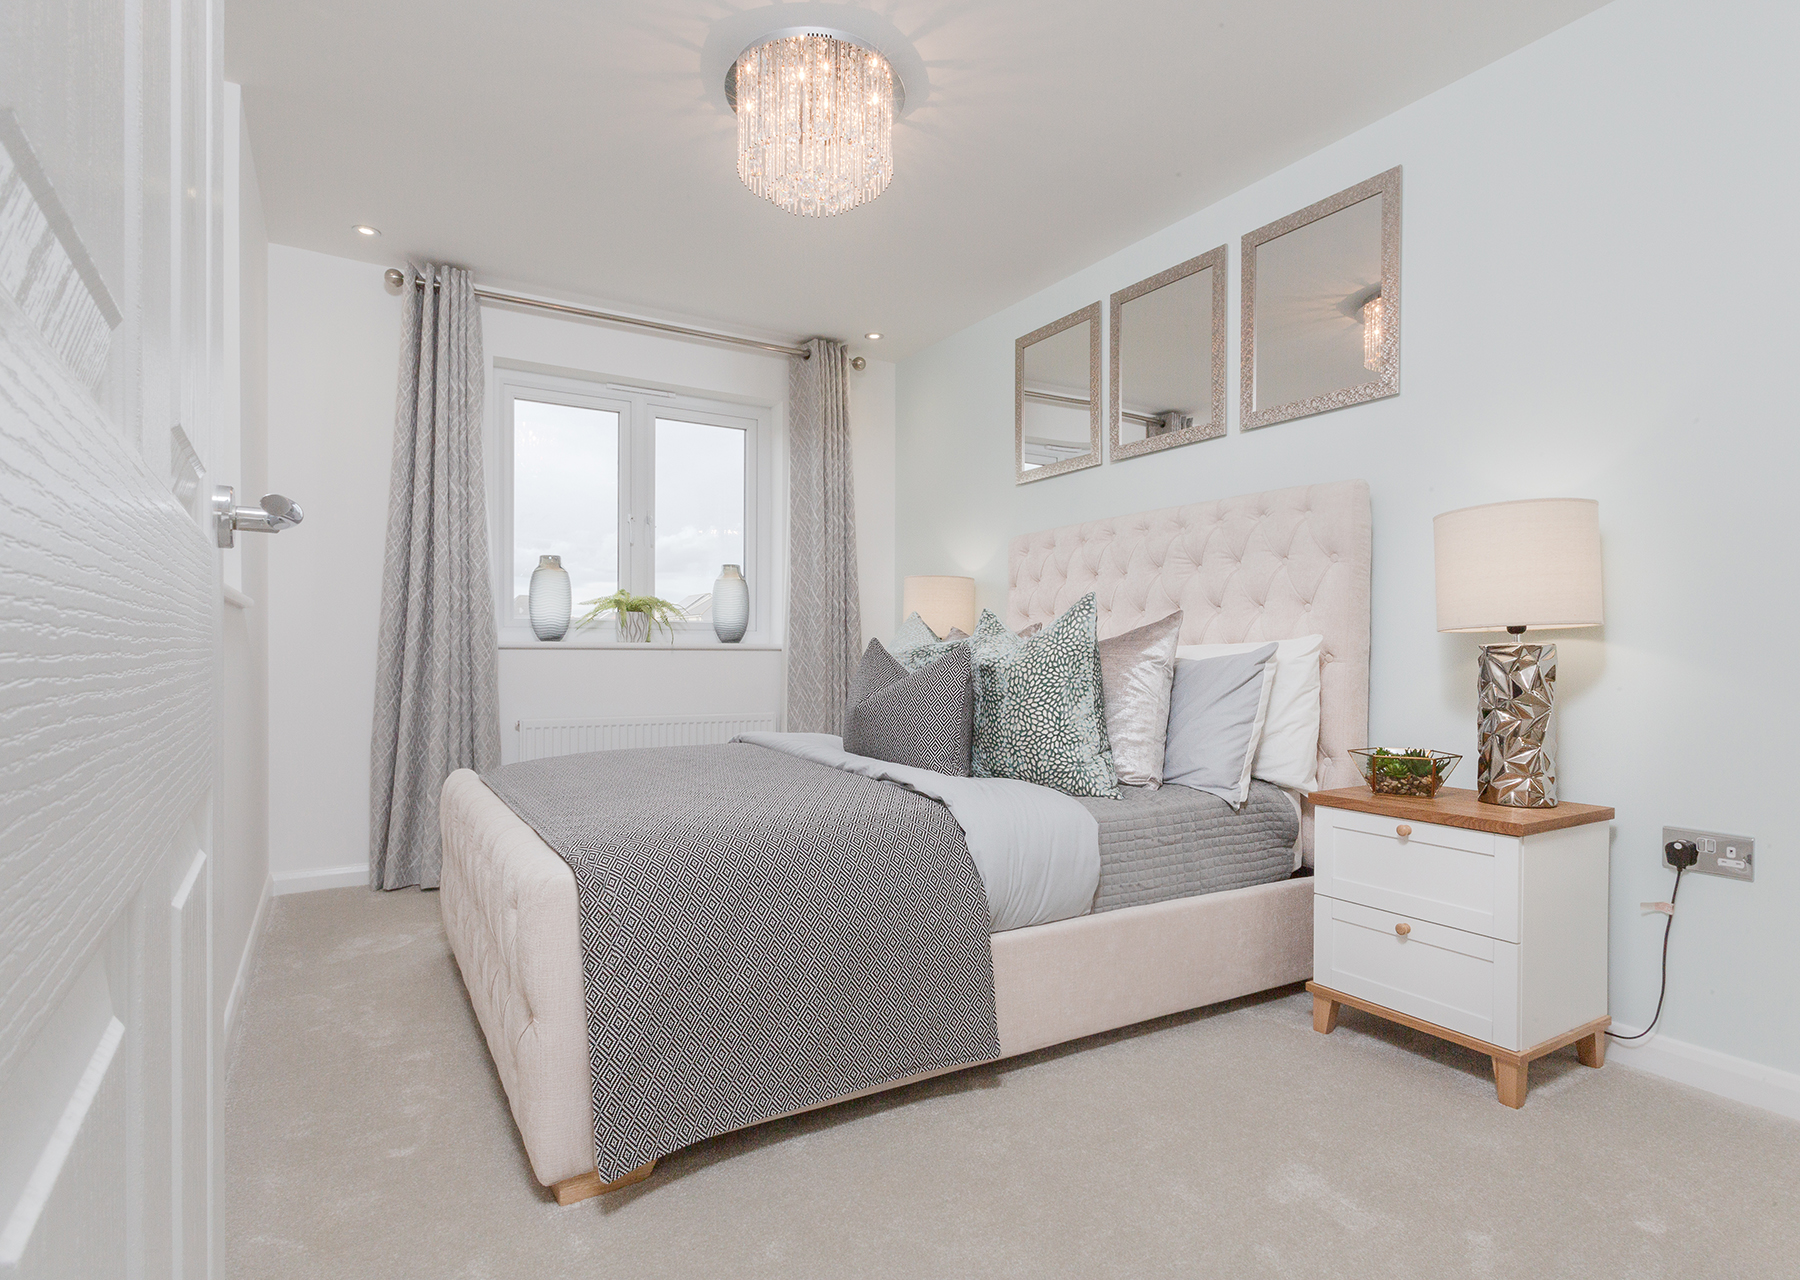 TWEs_Meadowlands_Fairbairn_Bedroom3_1800x1280